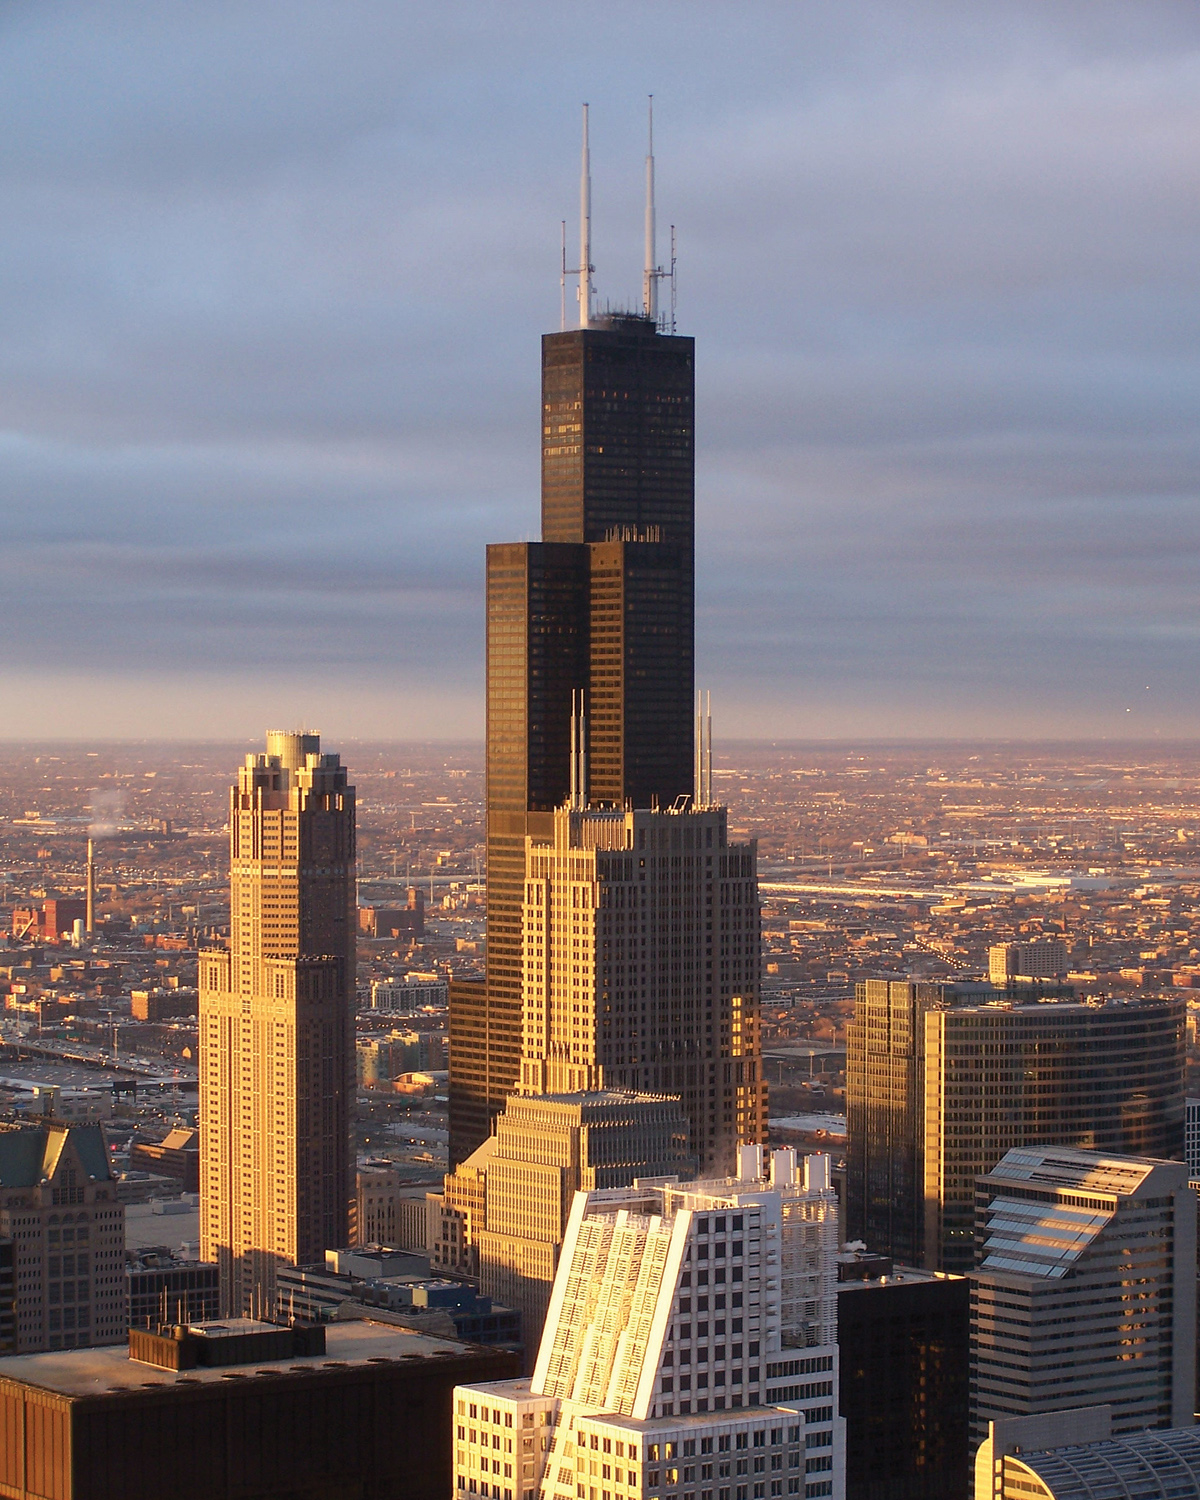 Images Of Willis Tower Sears Tower Renovation Now Willis Tower American